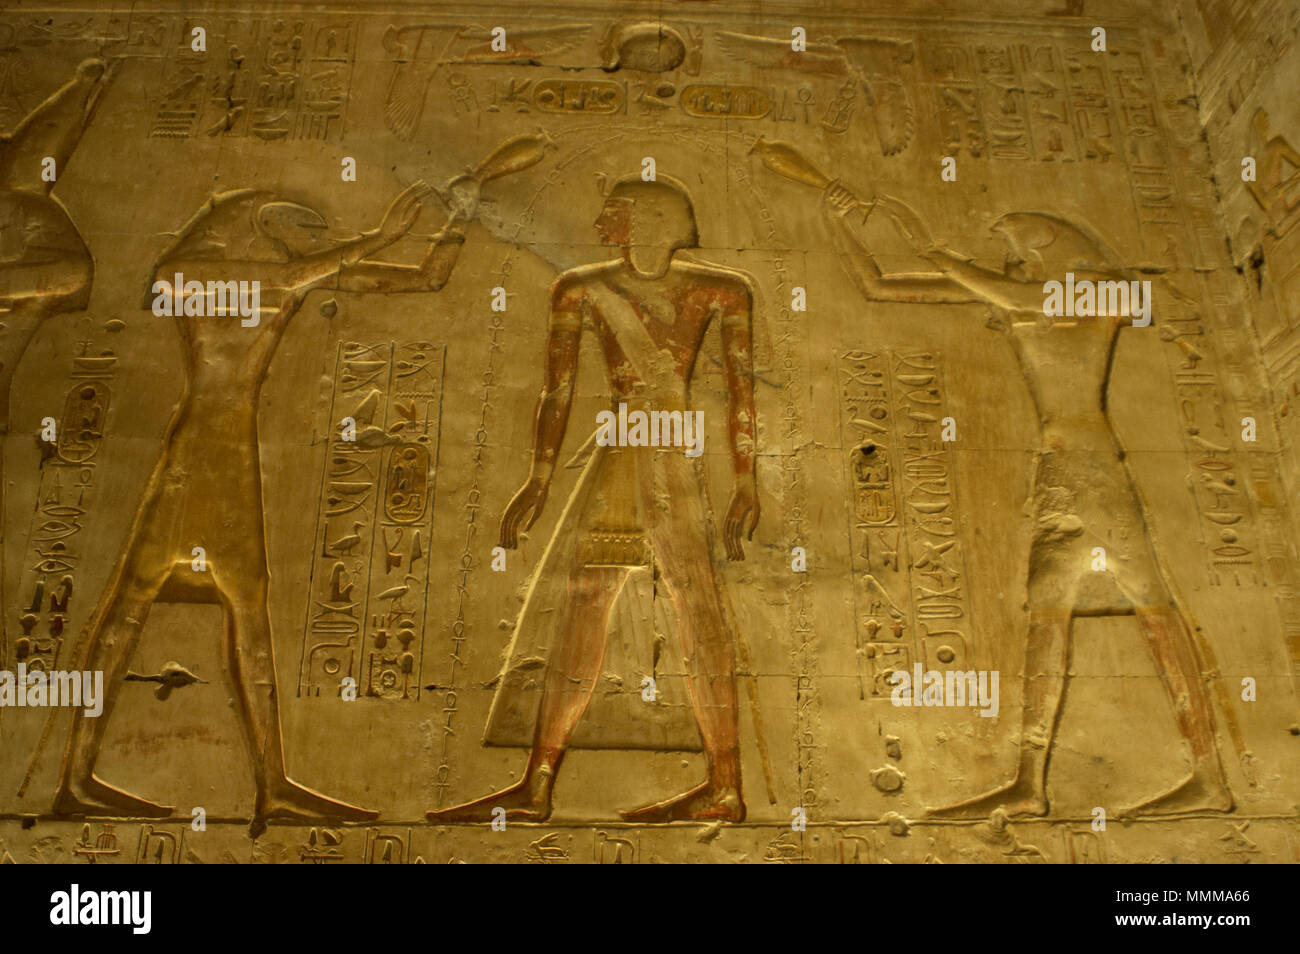 Thoth Stock Photos & Thoth Stock Images - Alamy